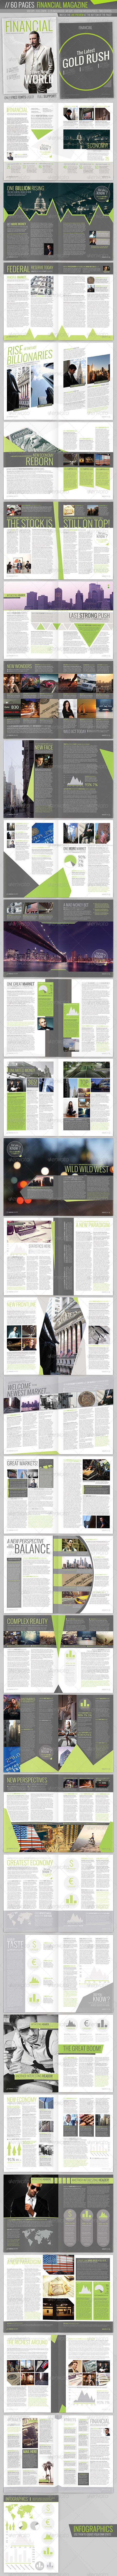 GraphicRiver Financial Magazine 60 Pages&2 Covers&Infographics 7726194